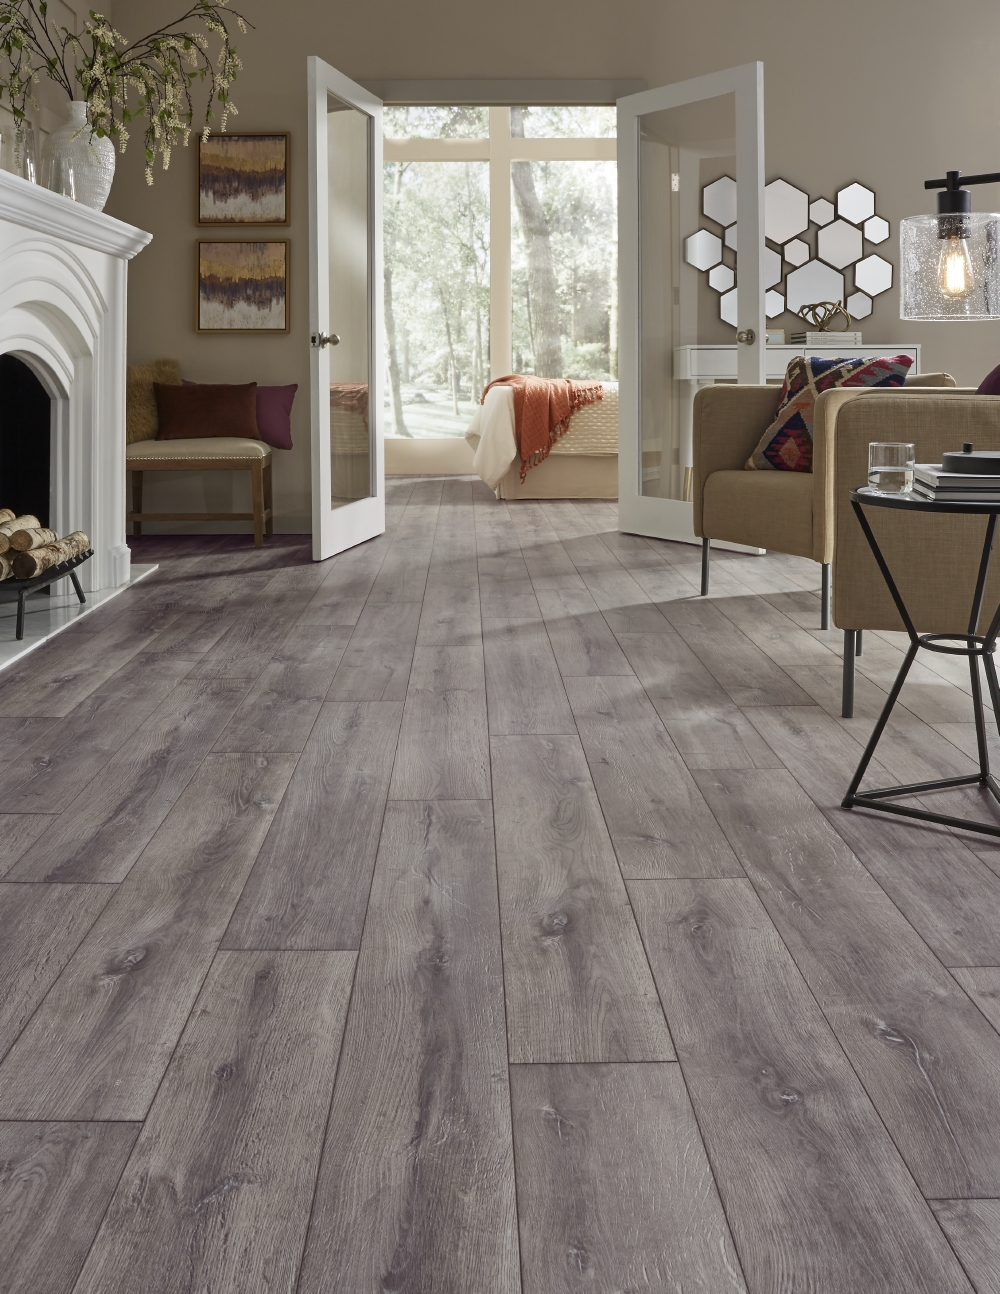 Flooring In House : Laminate floor blacksmith oak home flooring